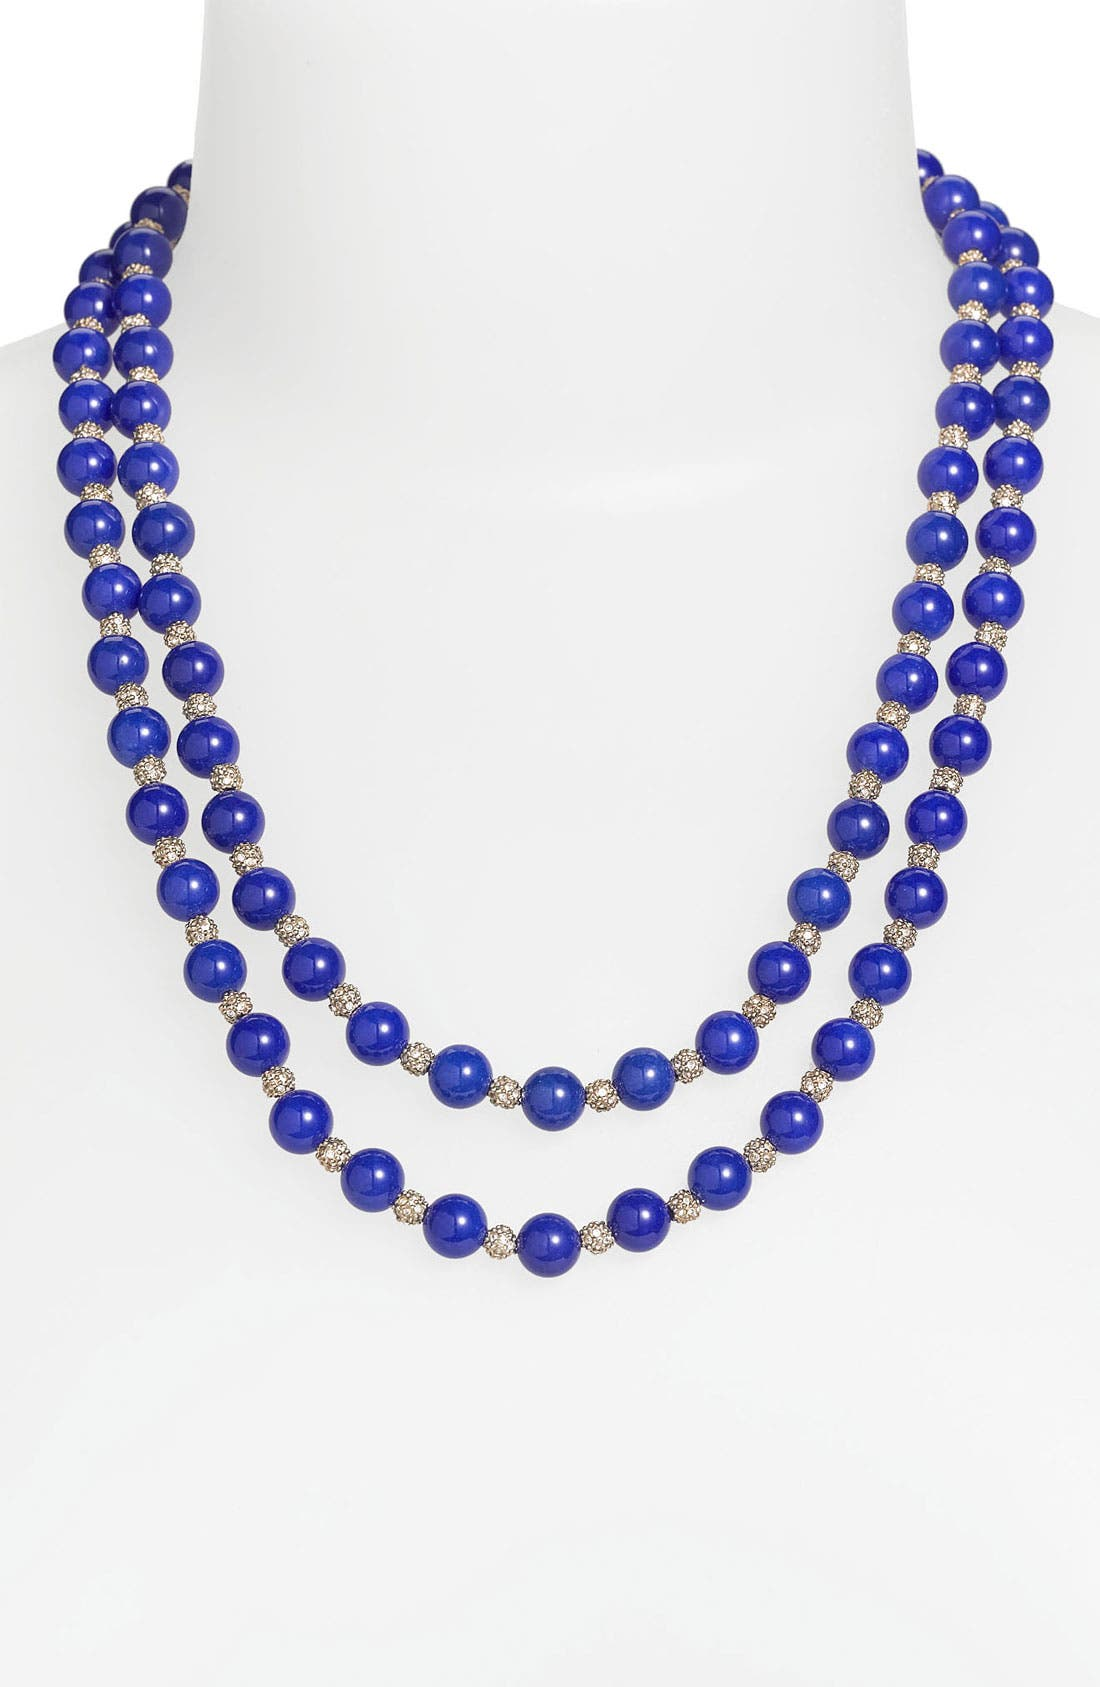 Main Image - St. John Collection Dyed Quartz Double Strand Necklace